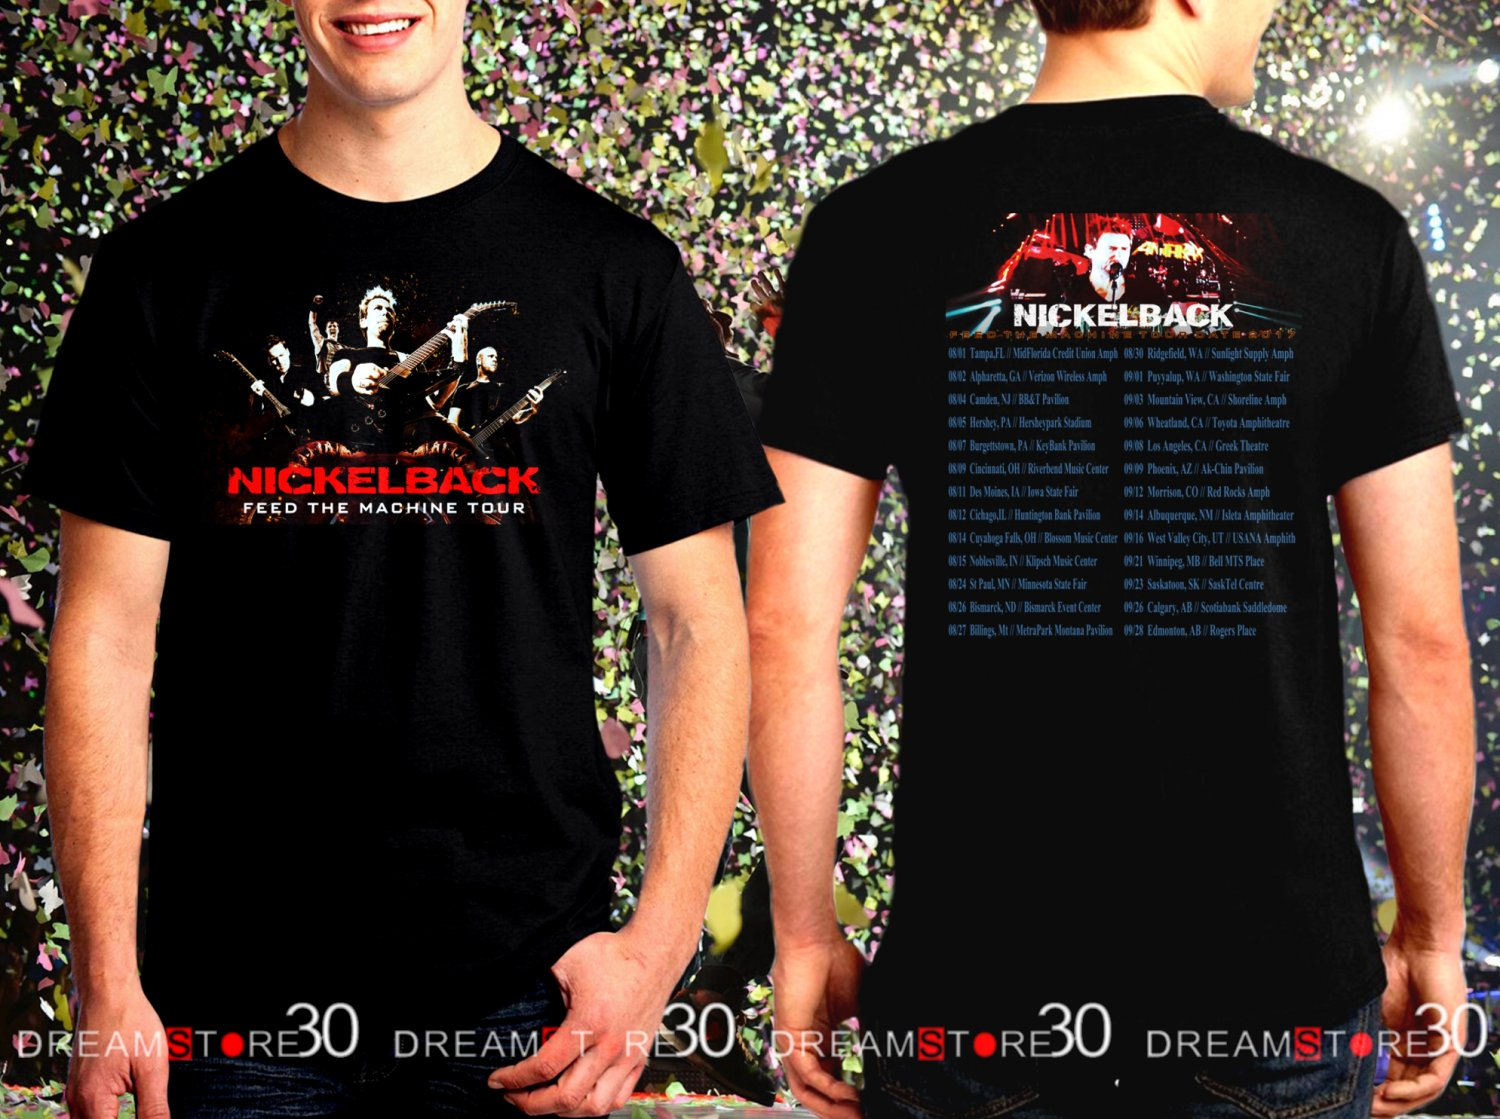 Nickelback Feed The Machinet Tour Dates 2017 Black Concert T Shirt Size S to 3XL NB3